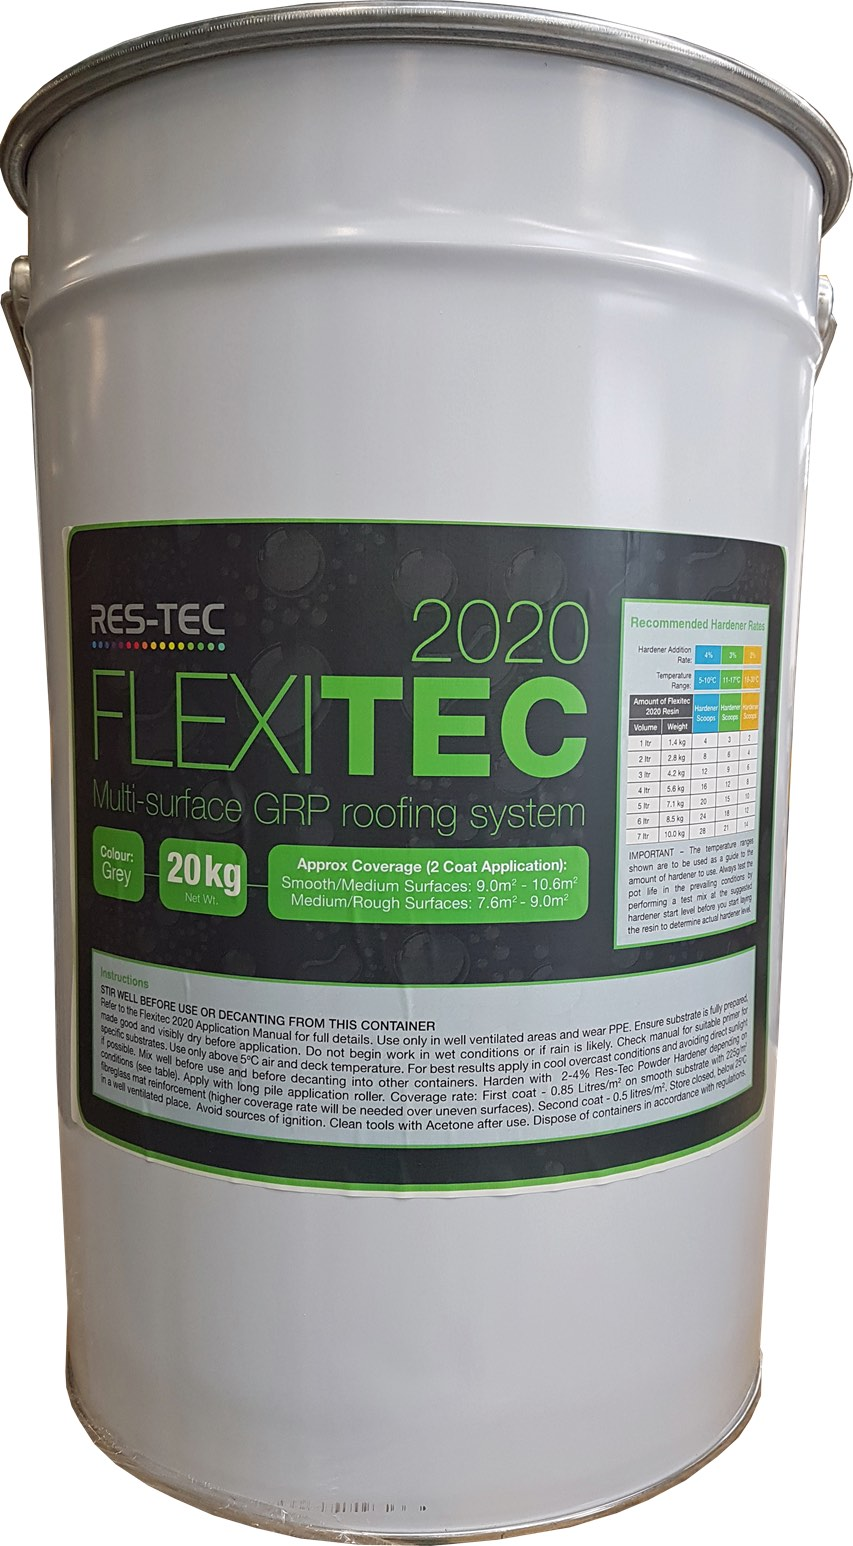 Flexitec 2020 Resin & Topcoat